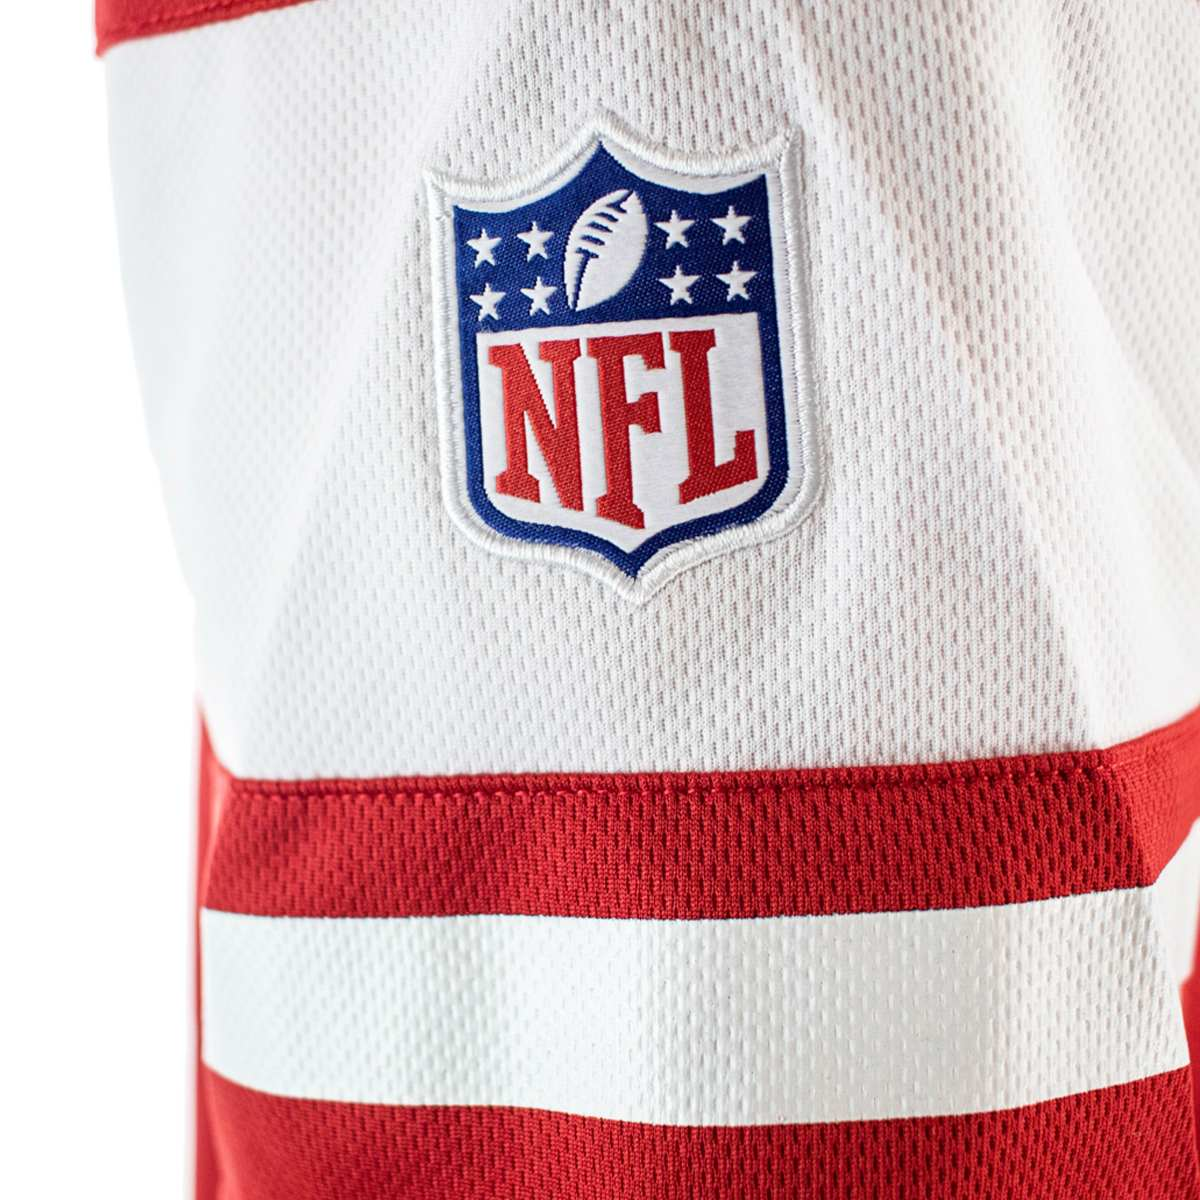 Fanatics San Francisco 49ers NFL Franchise Poly Mesh Supporters Jersey Trikot 2080MREDFHES49-